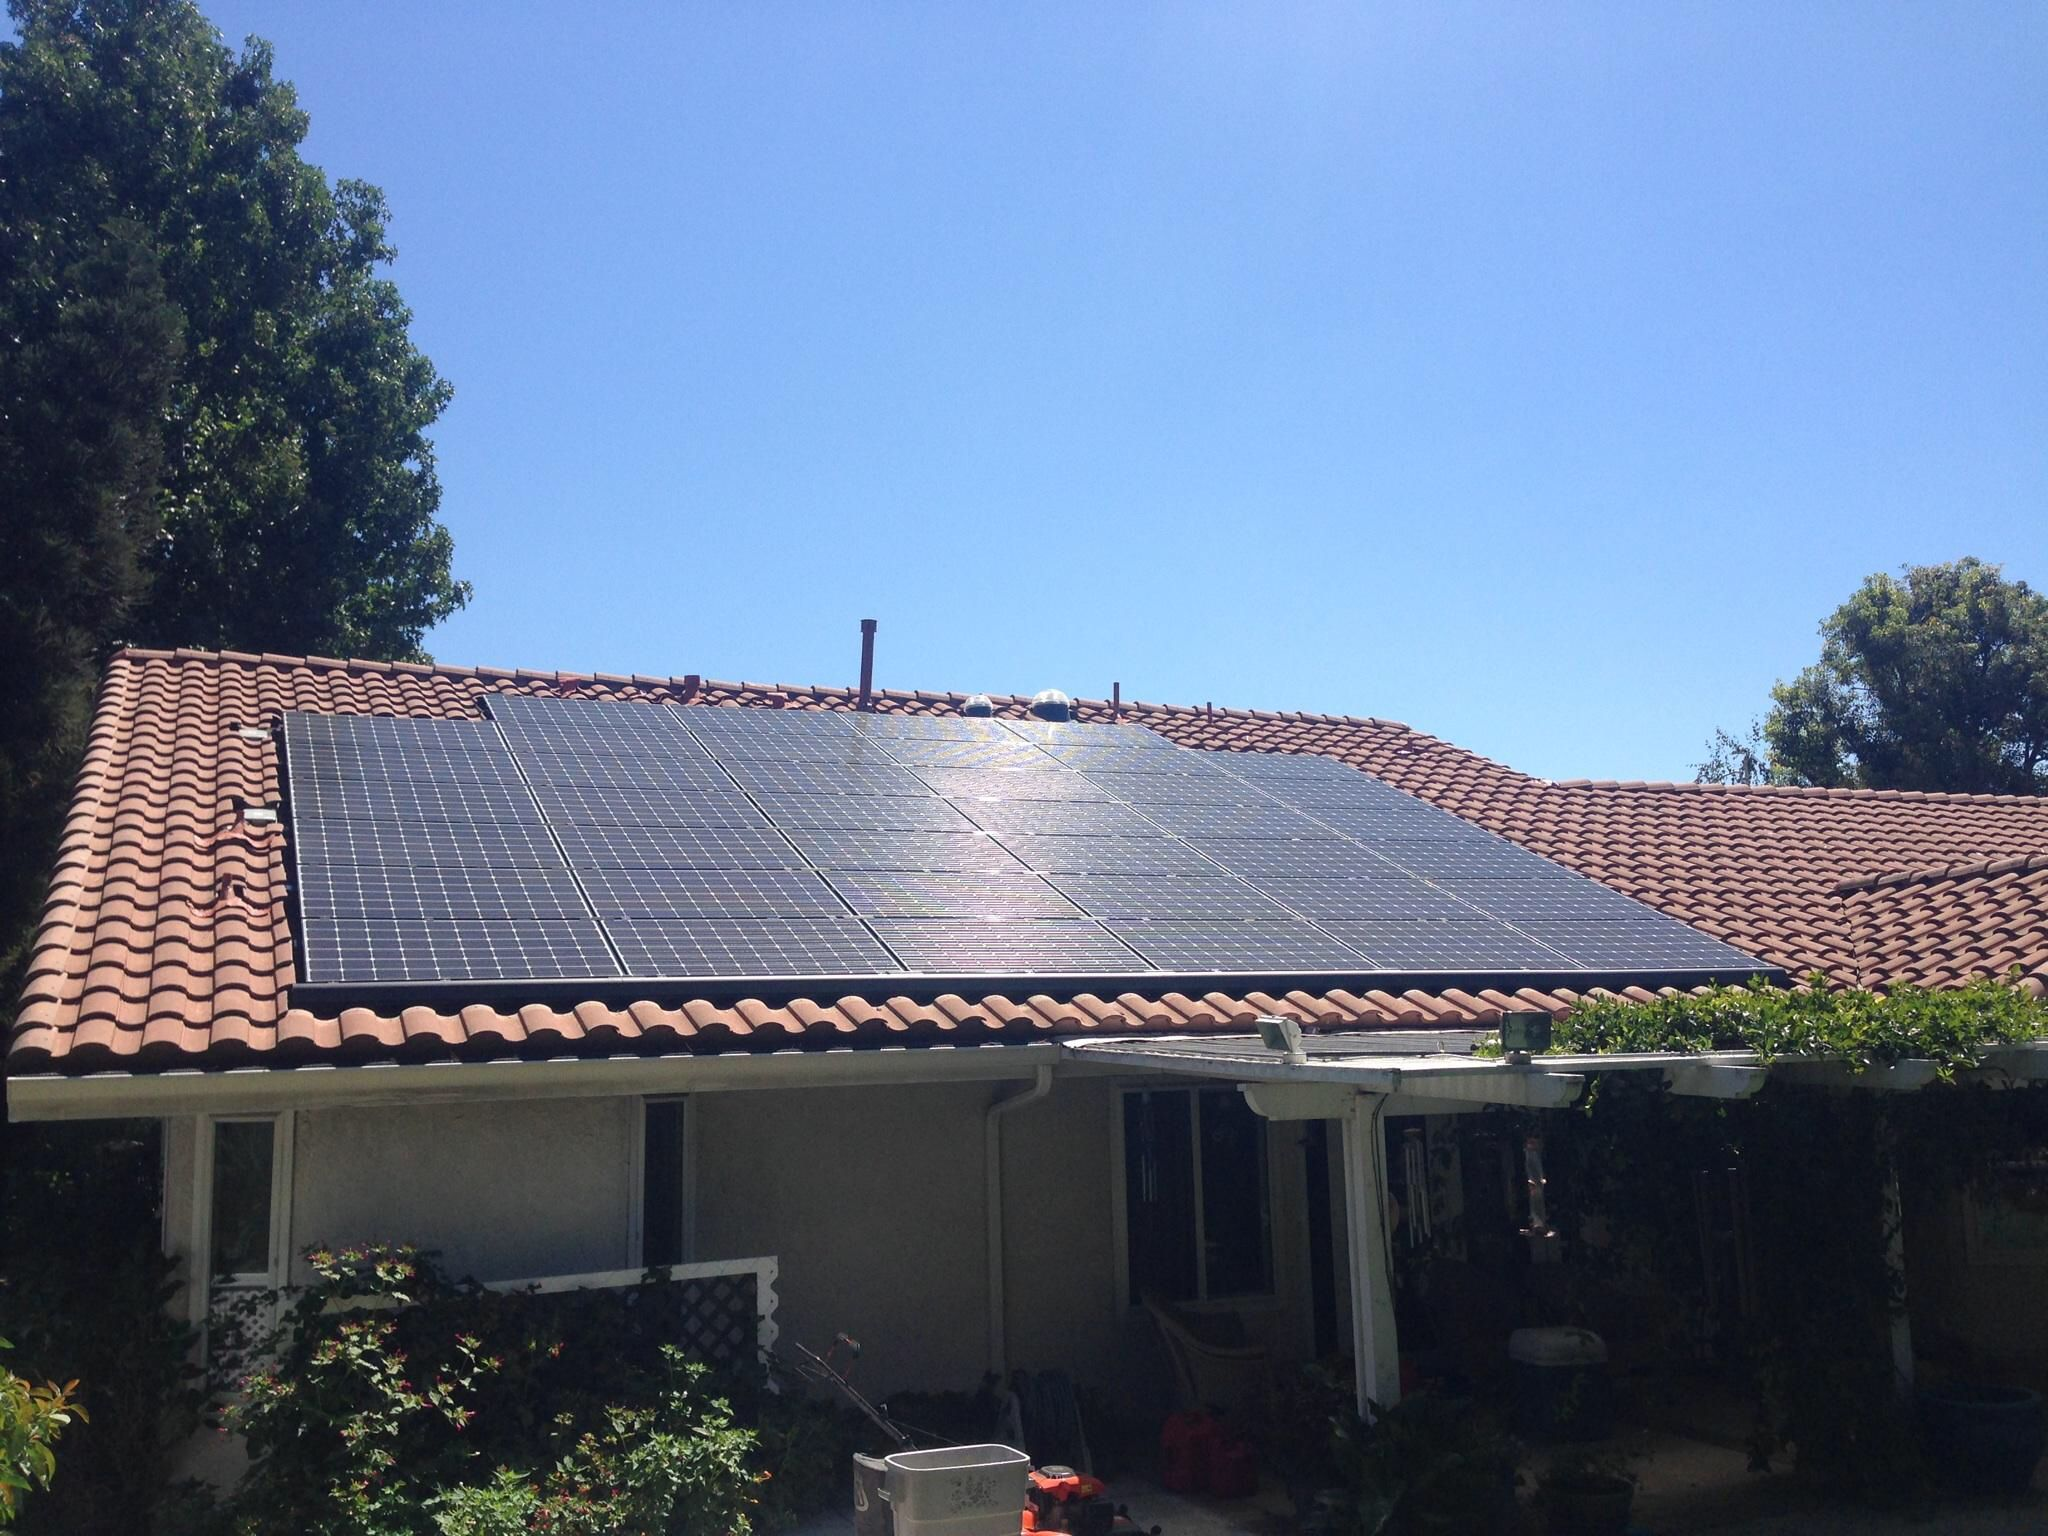 LG 40 panel solar system by Tu0026G Roofing Company of Upland. .tgroofing. & LG 40 panel solar system by Tu0026G Roofing Company of Upland. www ... memphite.com